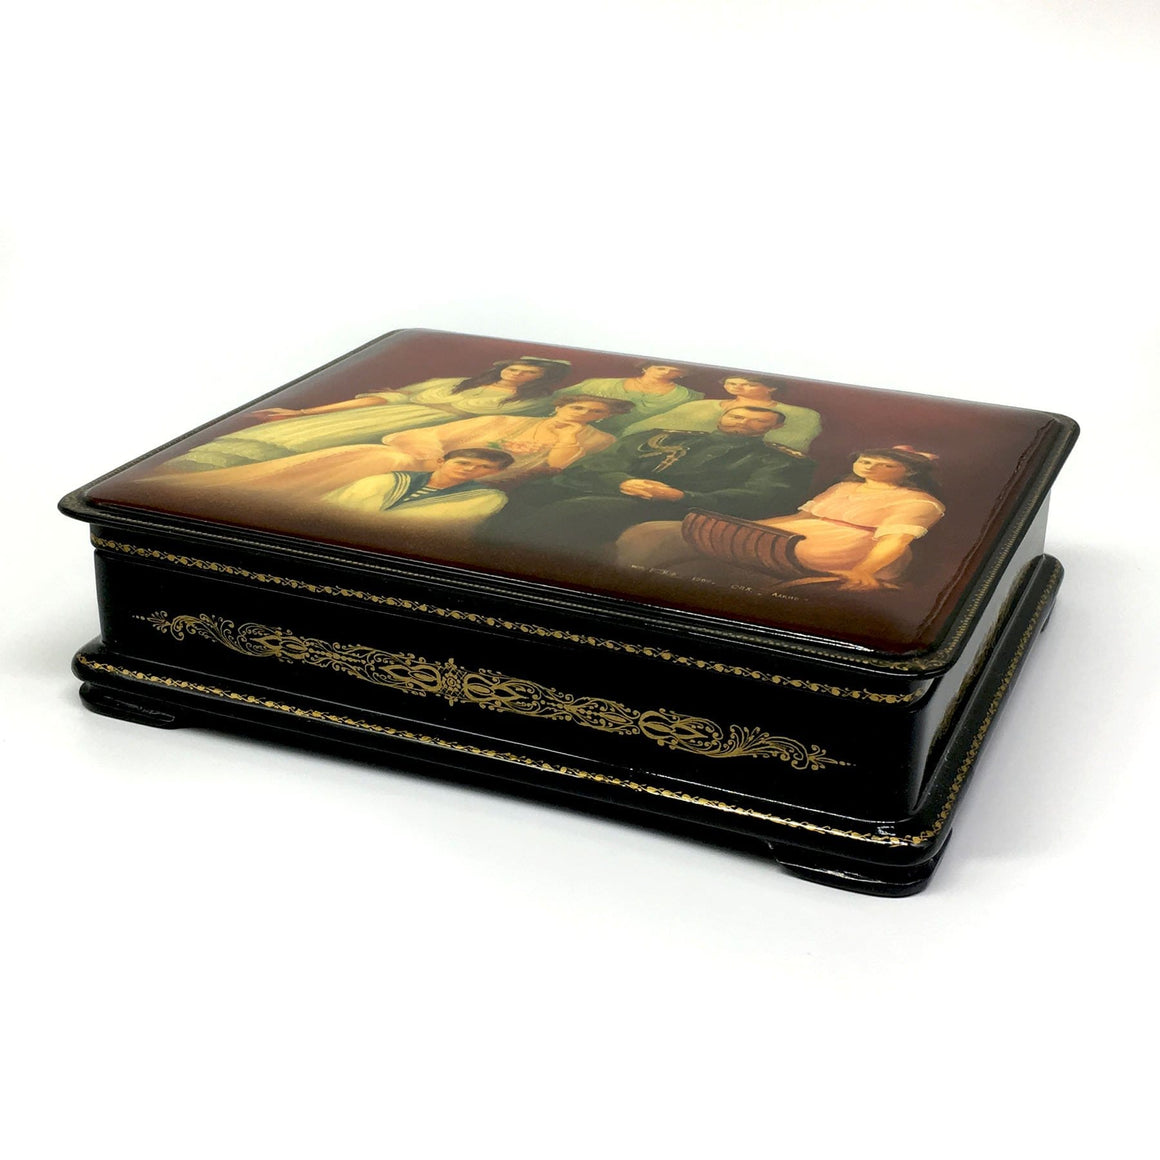 "Lacquer Box ""Royal Family Martyrs"" (hand-painted)"